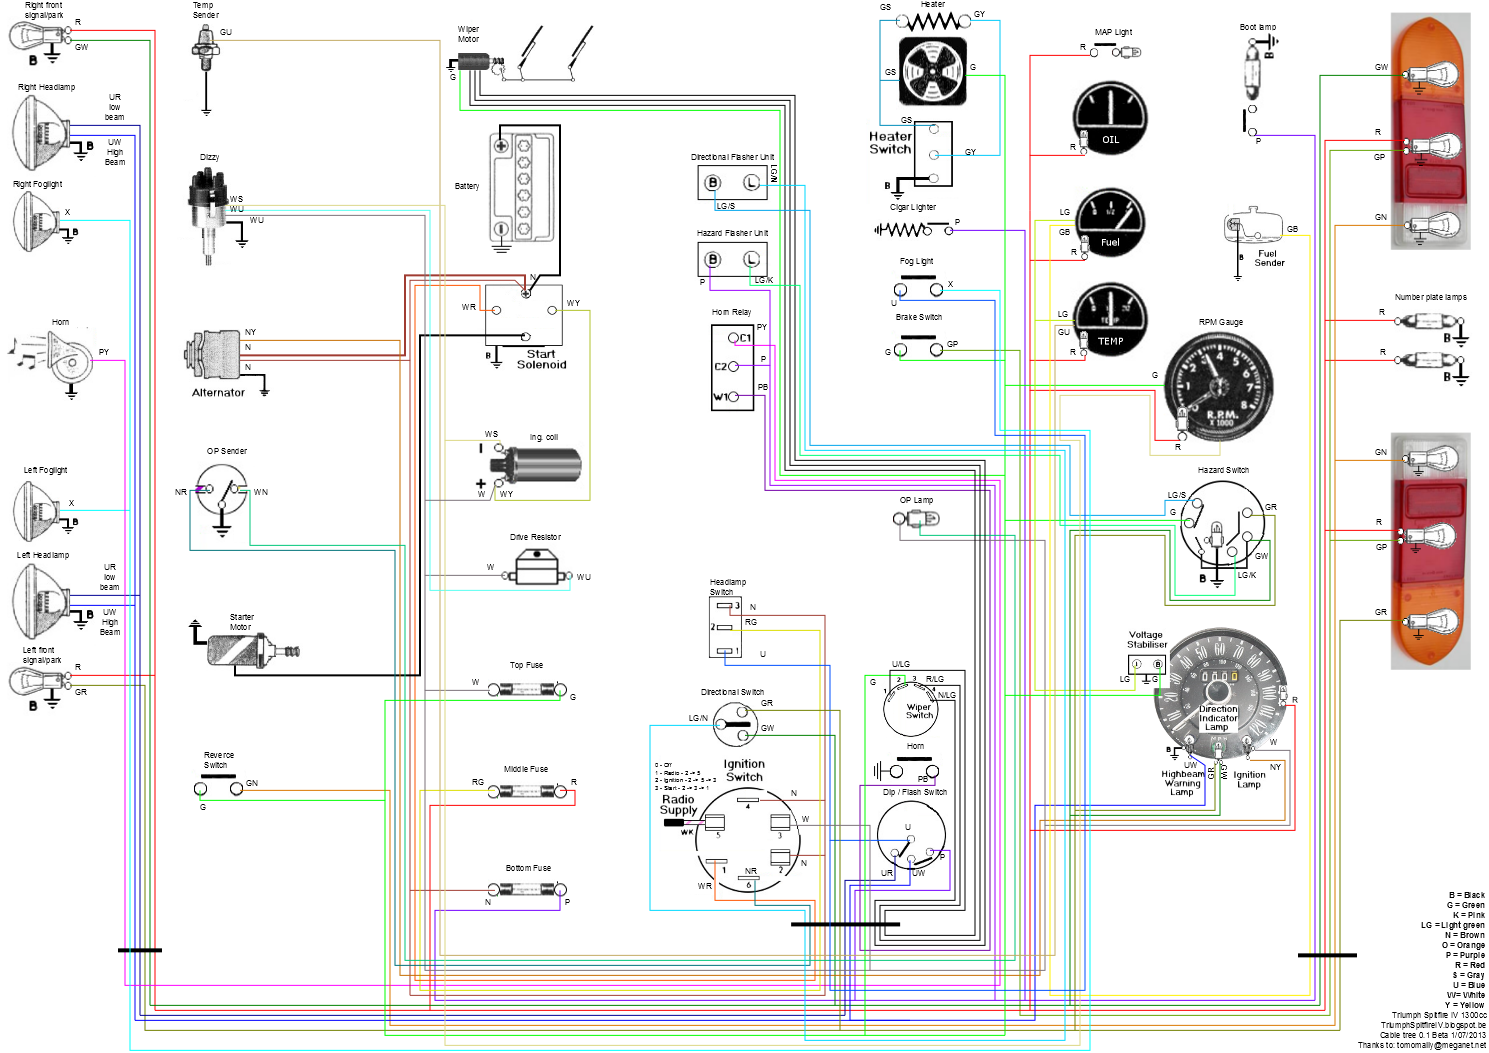 spitfire iv wiring diagram mk4 wiring diagram mk4 tdi wiring diagram \u2022 wiring diagrams j  at soozxer.org